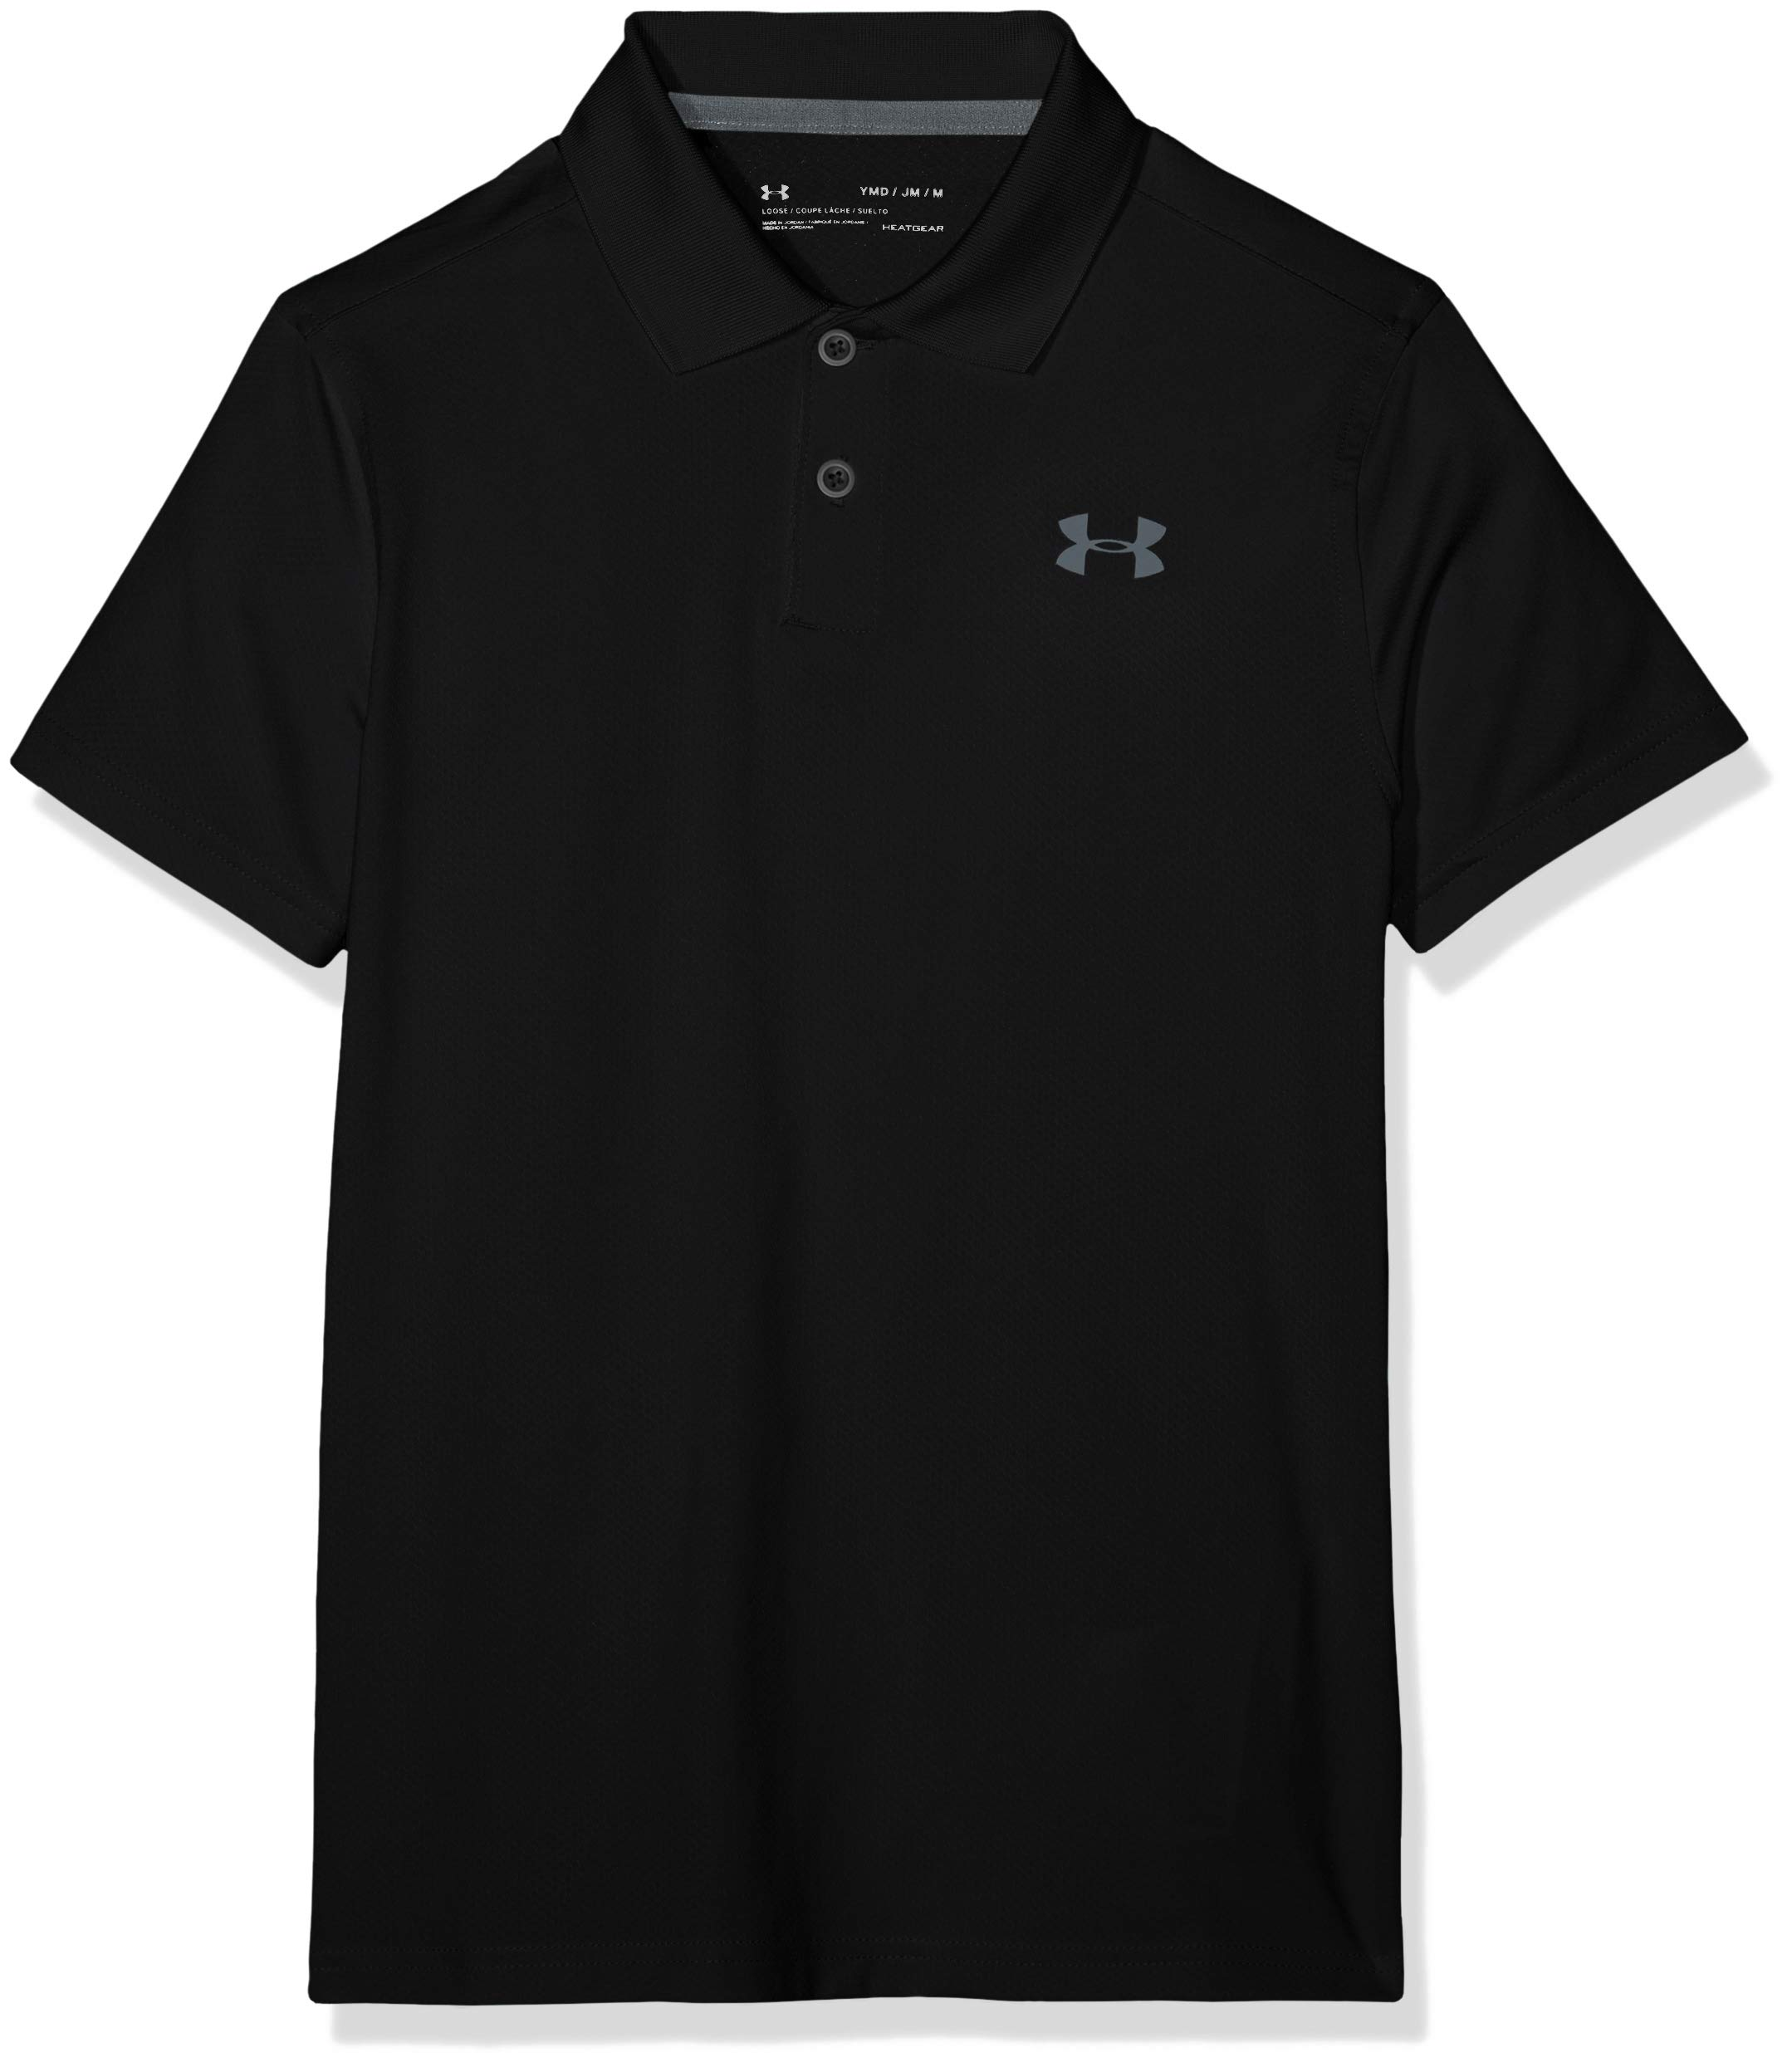 Under Armour Performance Polo 2.0, Black/Pitch Gray, Youth X-Small